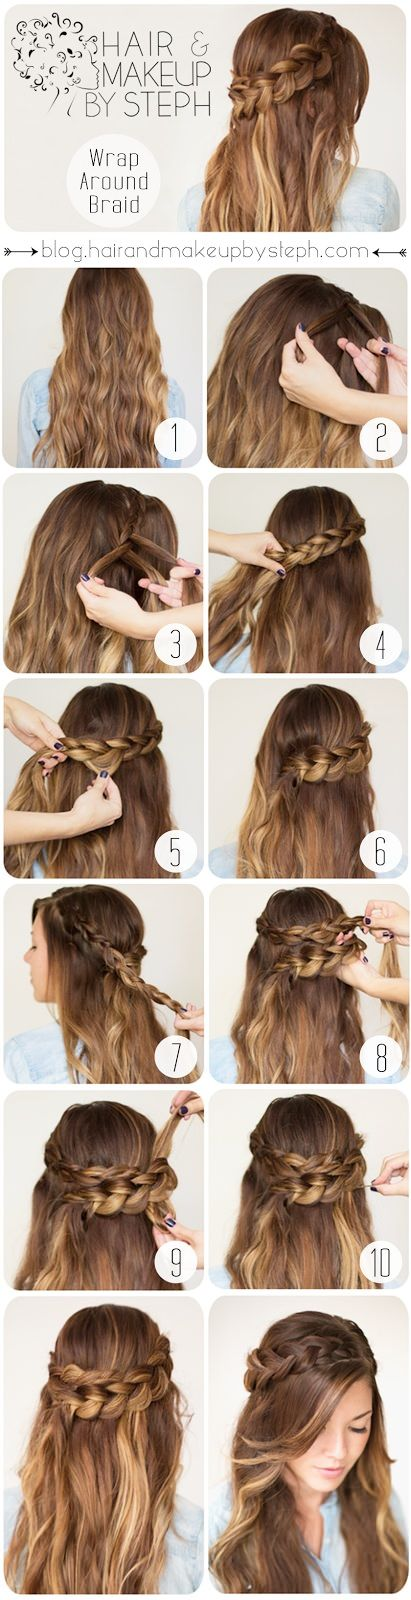 Wrap Around Braid For Long Hair